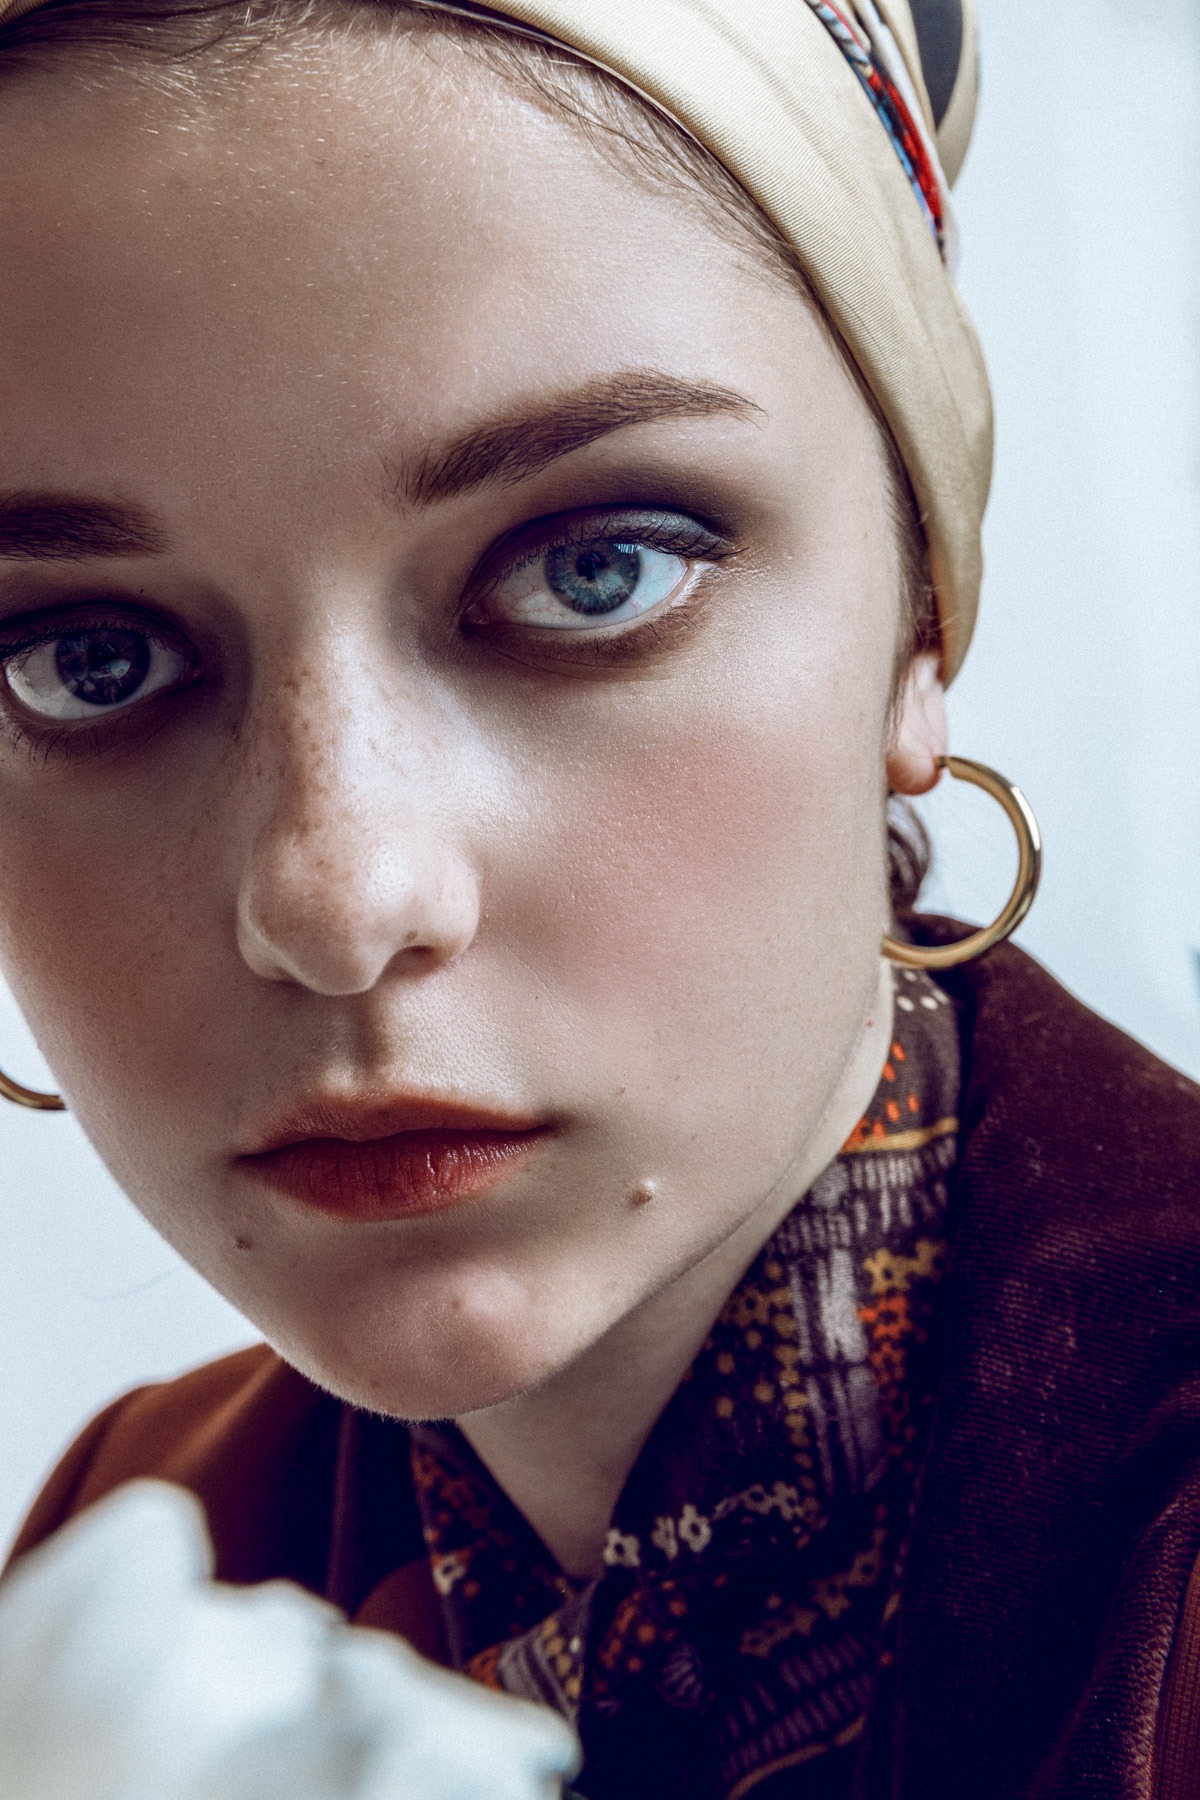 anmoda models tokyo alyona wearing headscarf and dlaw jewellery hoops photographed by ivana micic